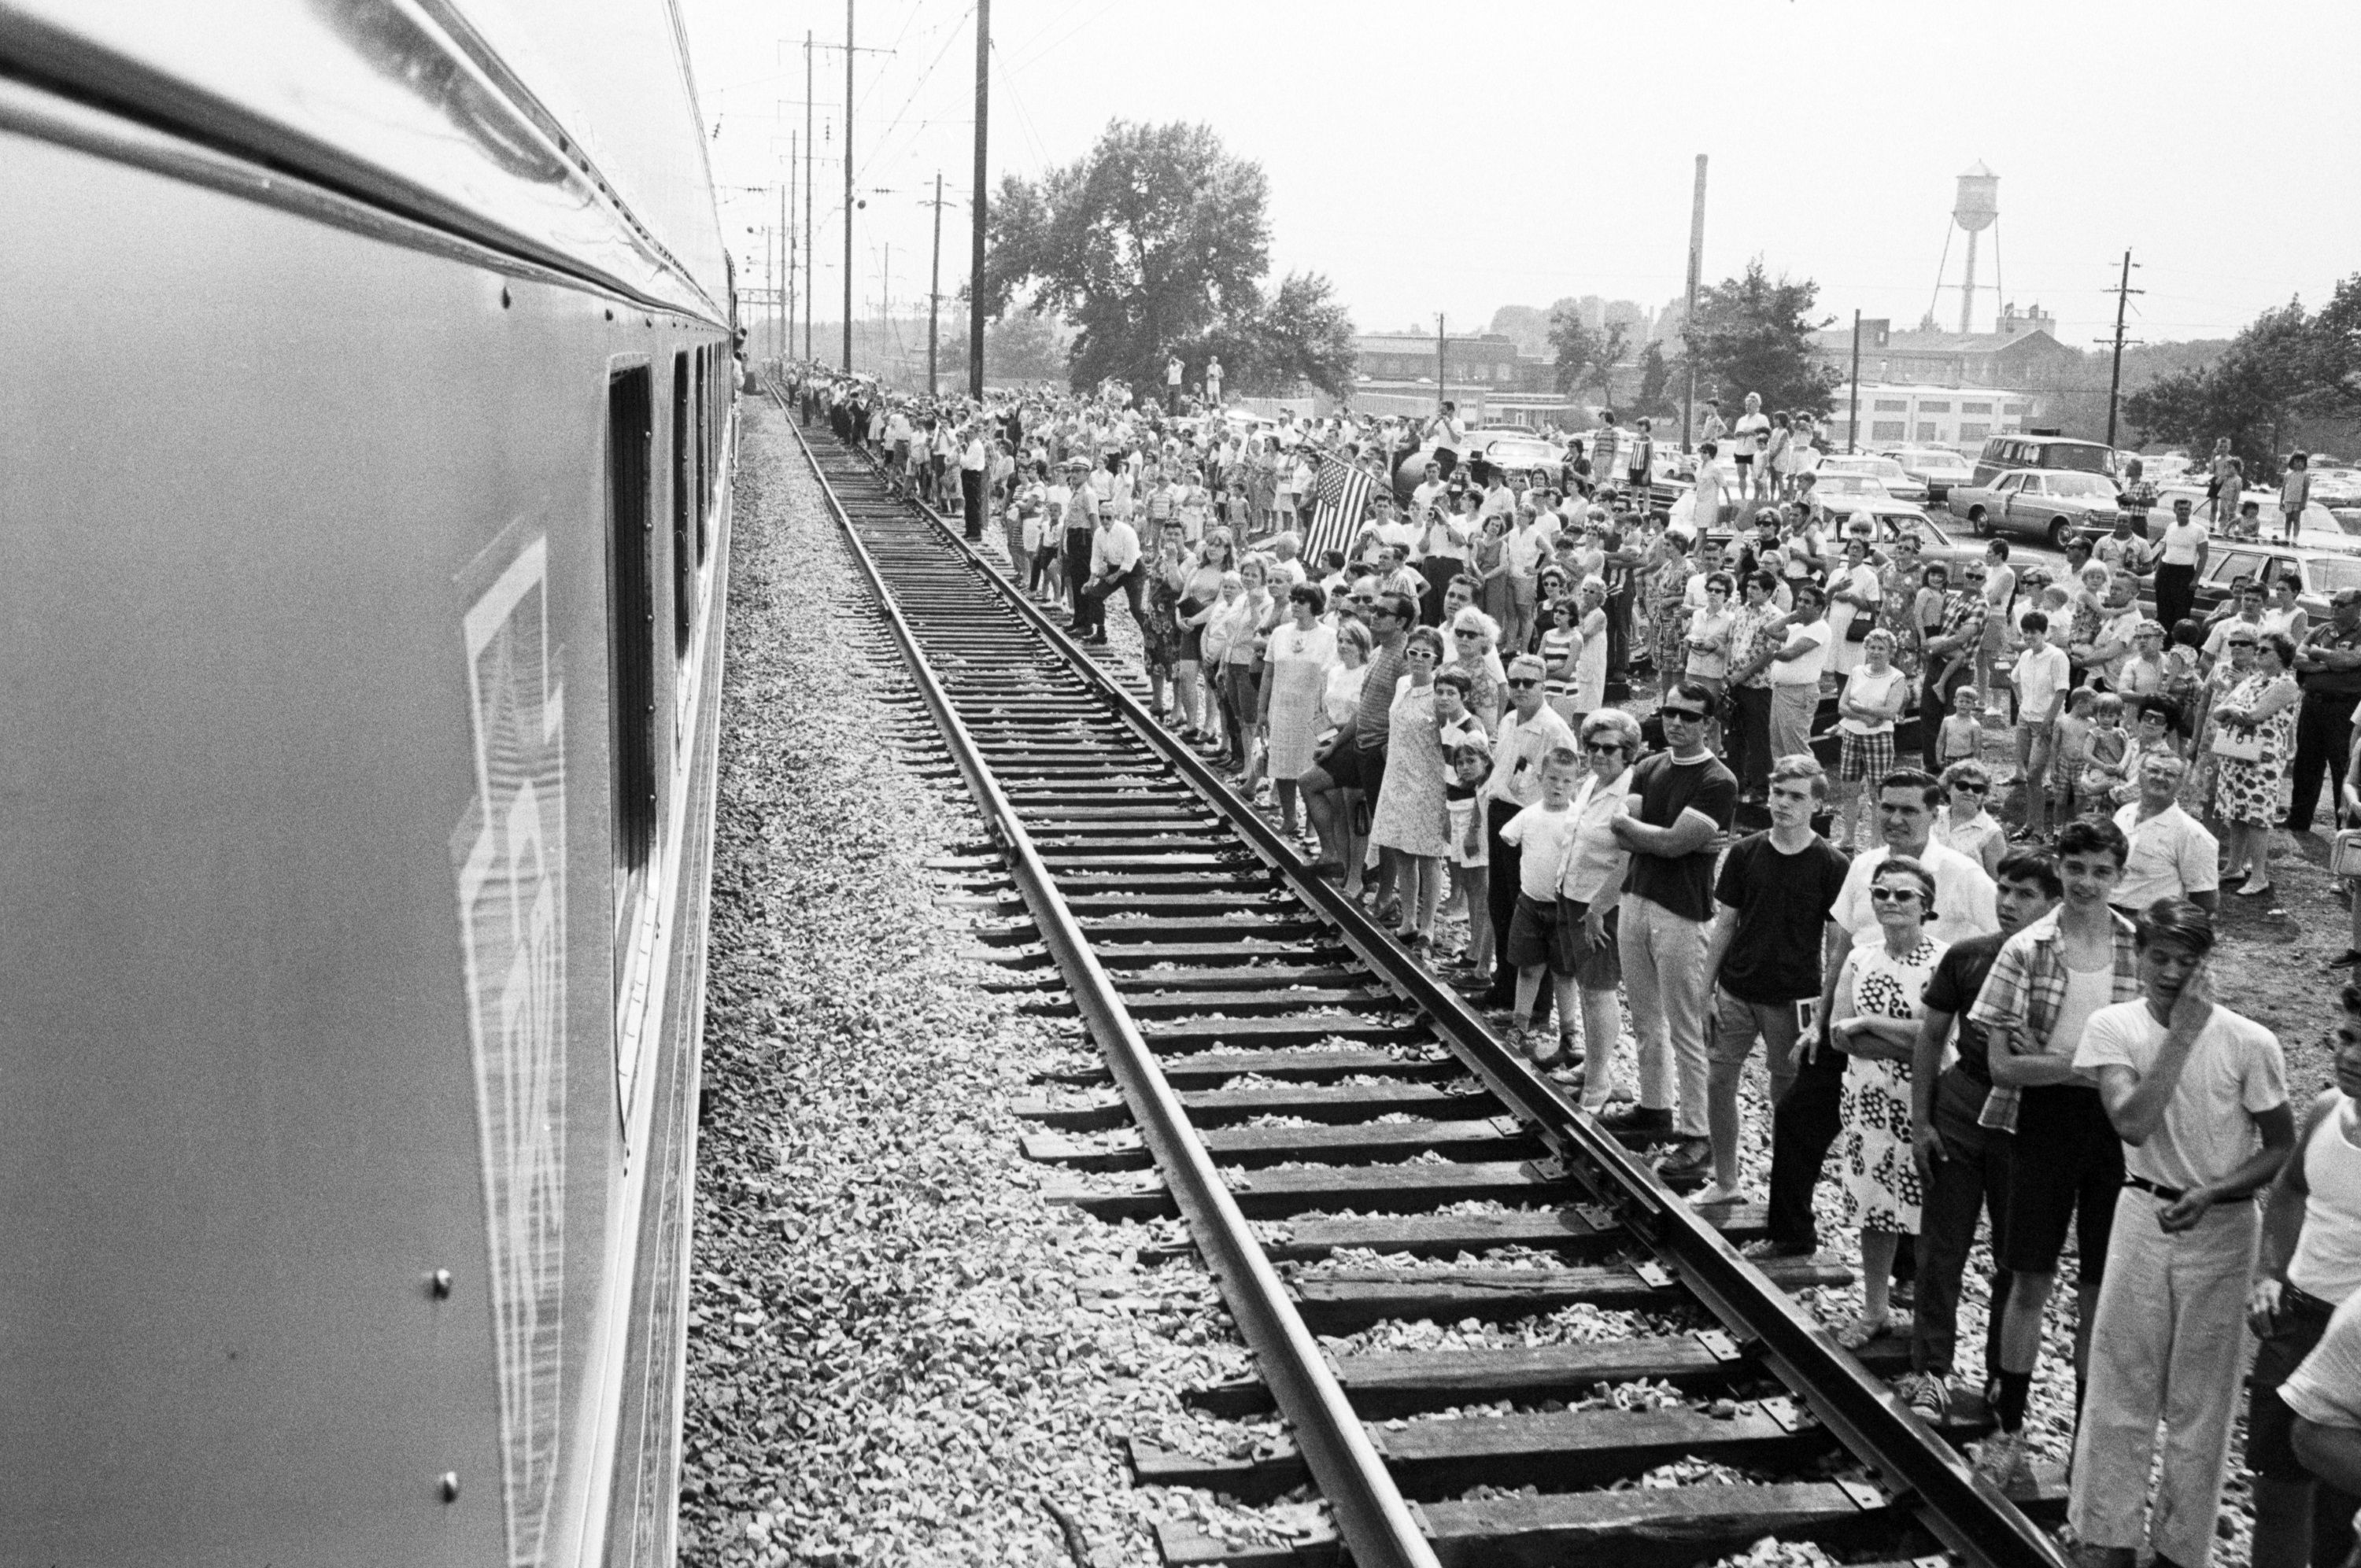 Crowds watching funeral train of Robert F. Kennedy